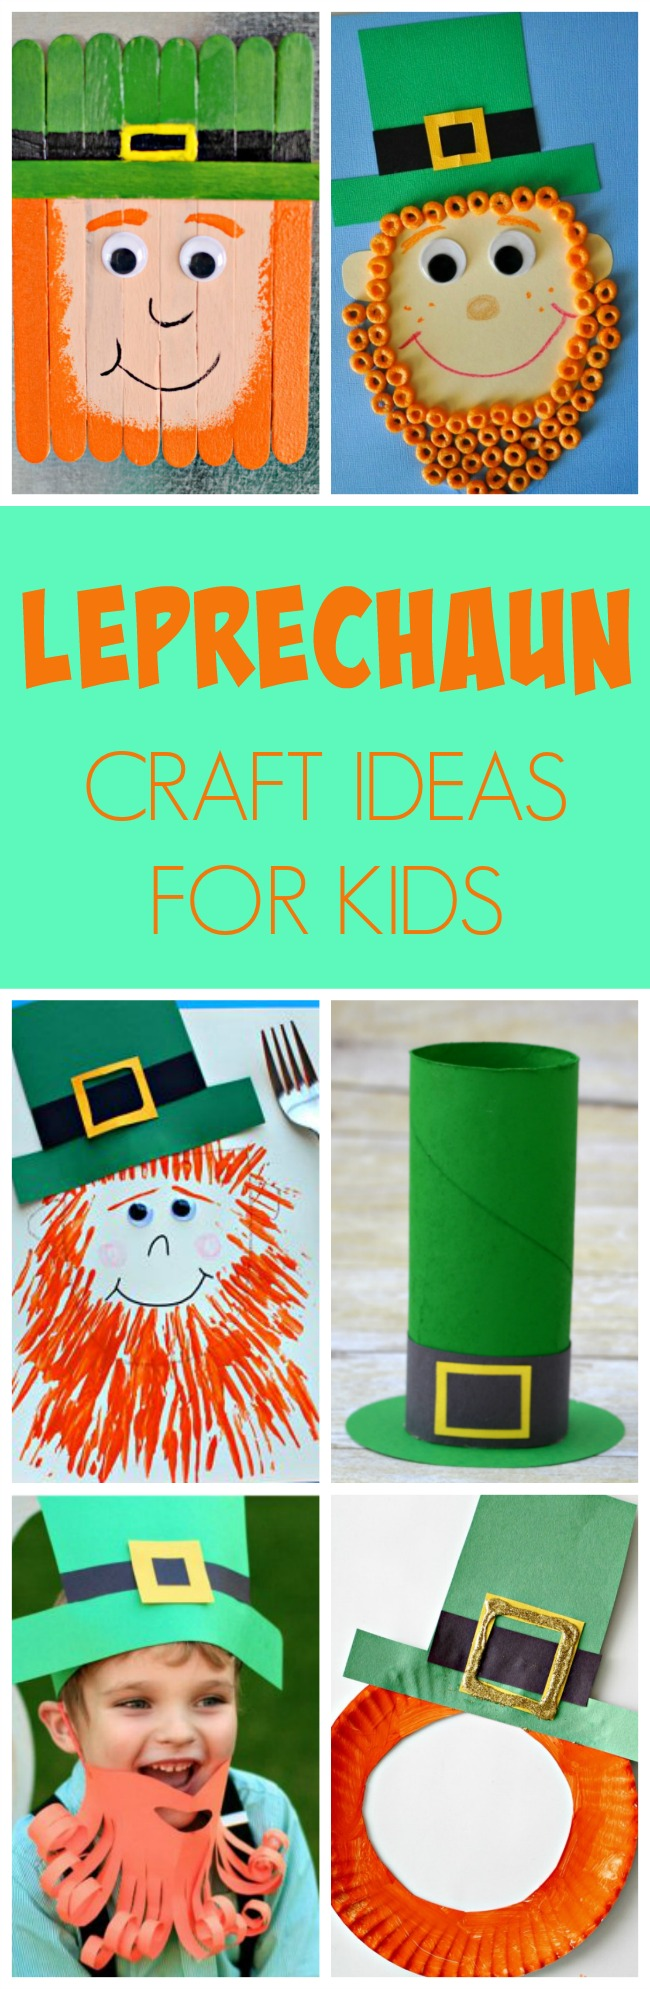 10 Adorable Leprechaun Craft Ideas